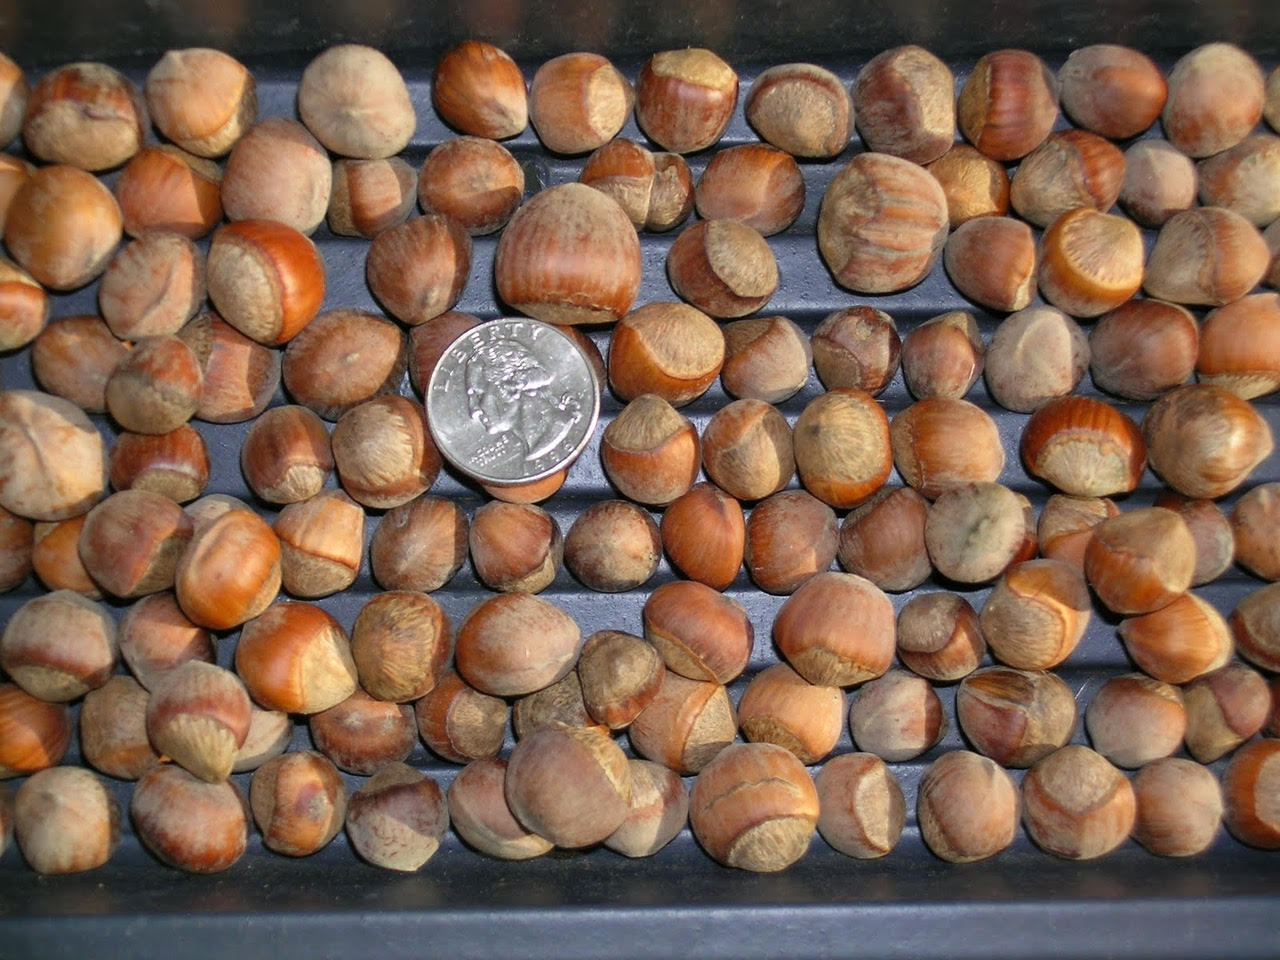 dozens of chestnuts, about the size of the shown quarter